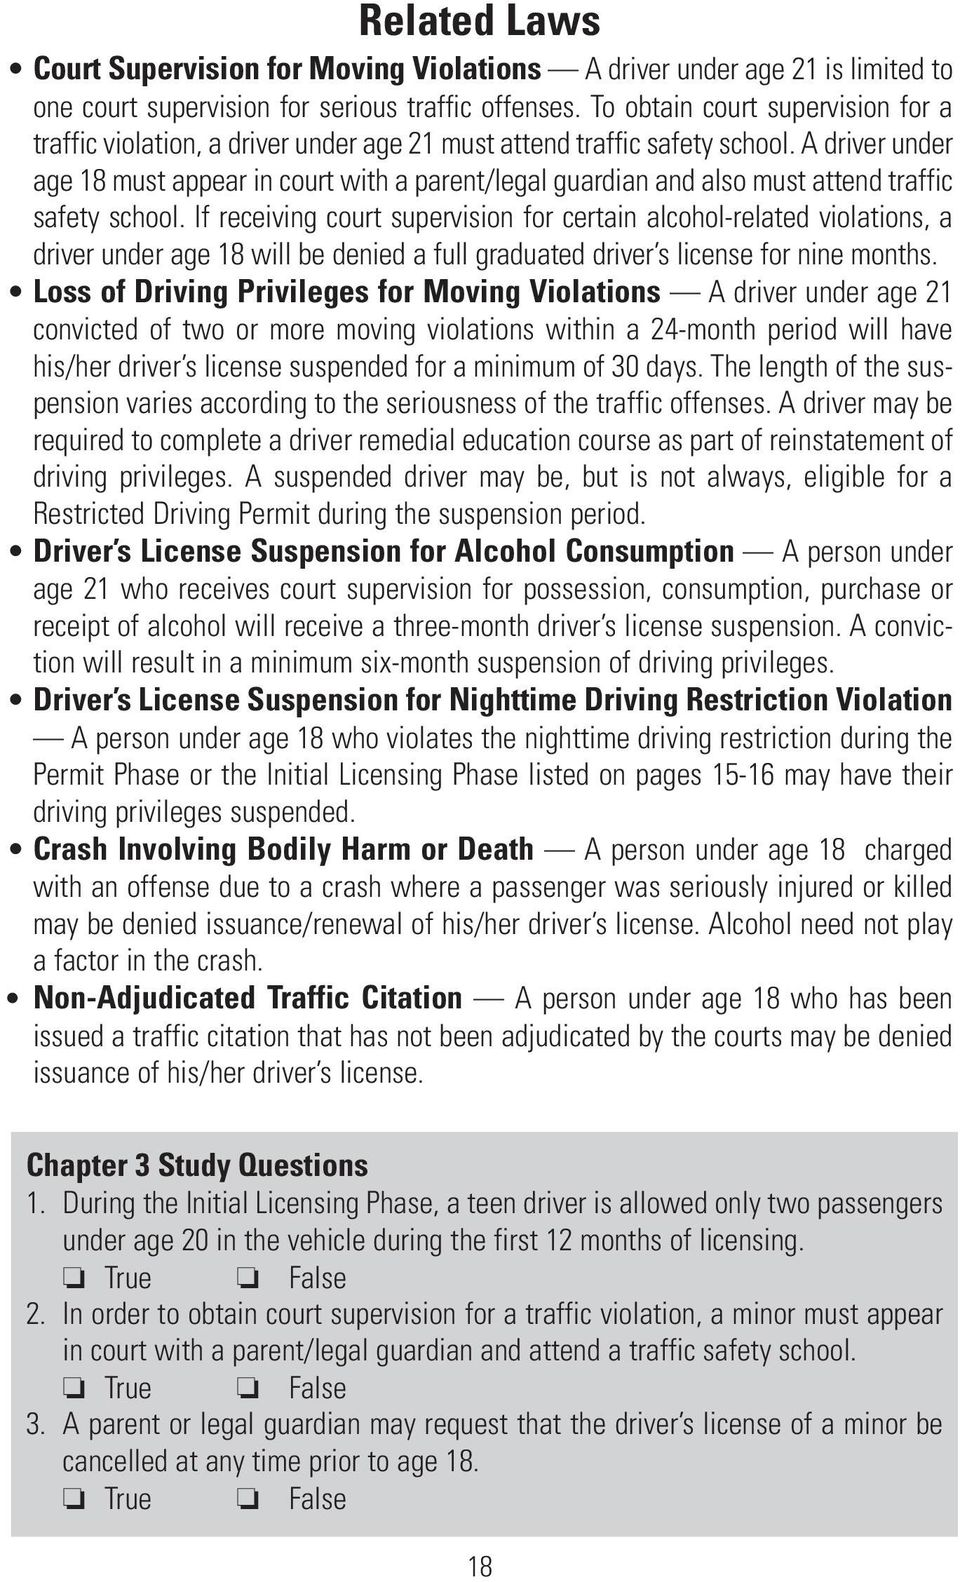 A driver under age 18 must appear in court with a parent/legal guardian and also must attend traffic safety school.